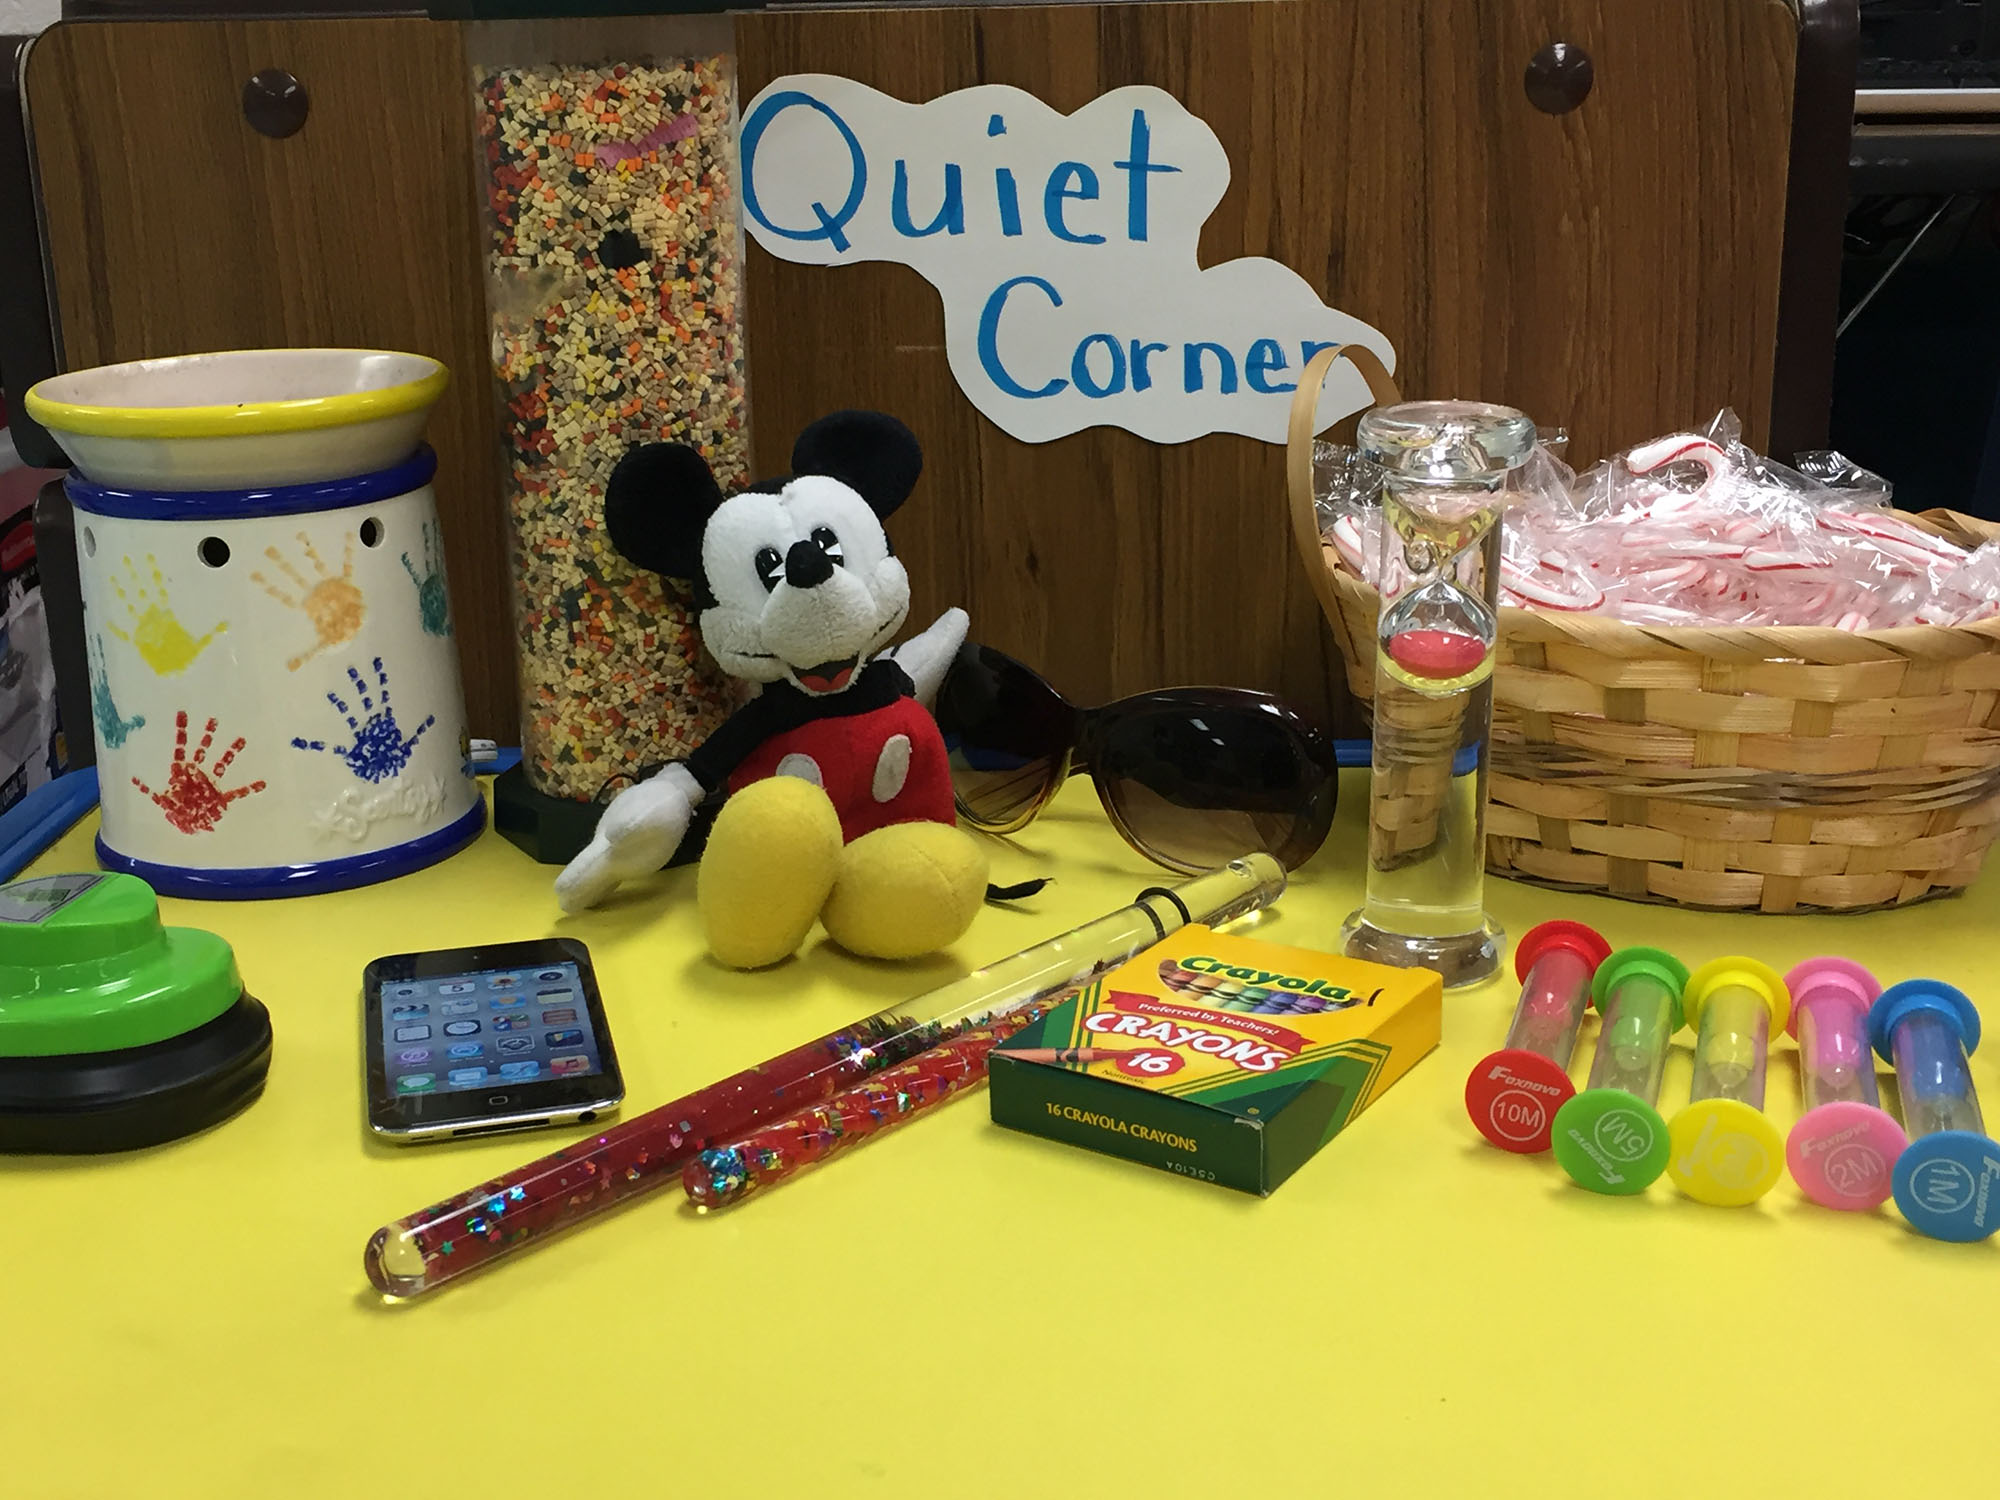 A table with calming items for a break